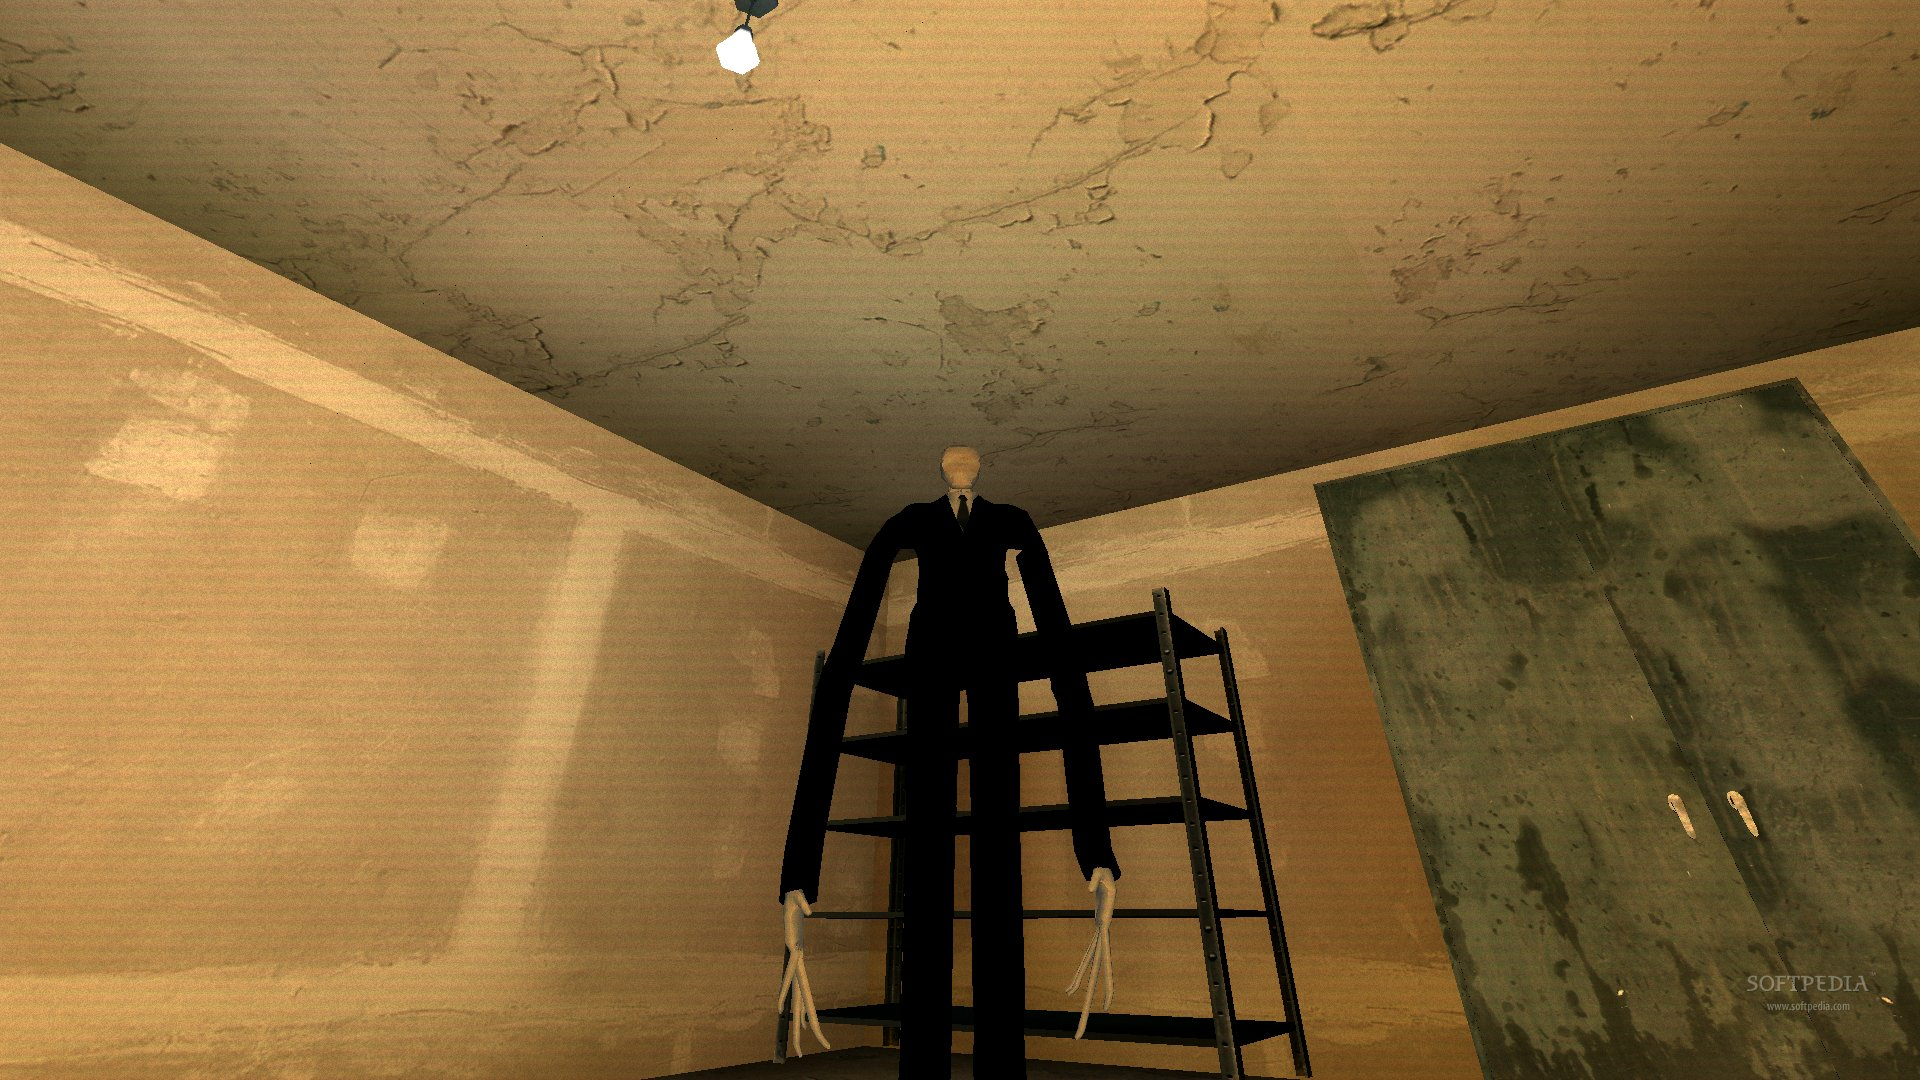 Slenderman shadow setup 1.1 download : quiconday